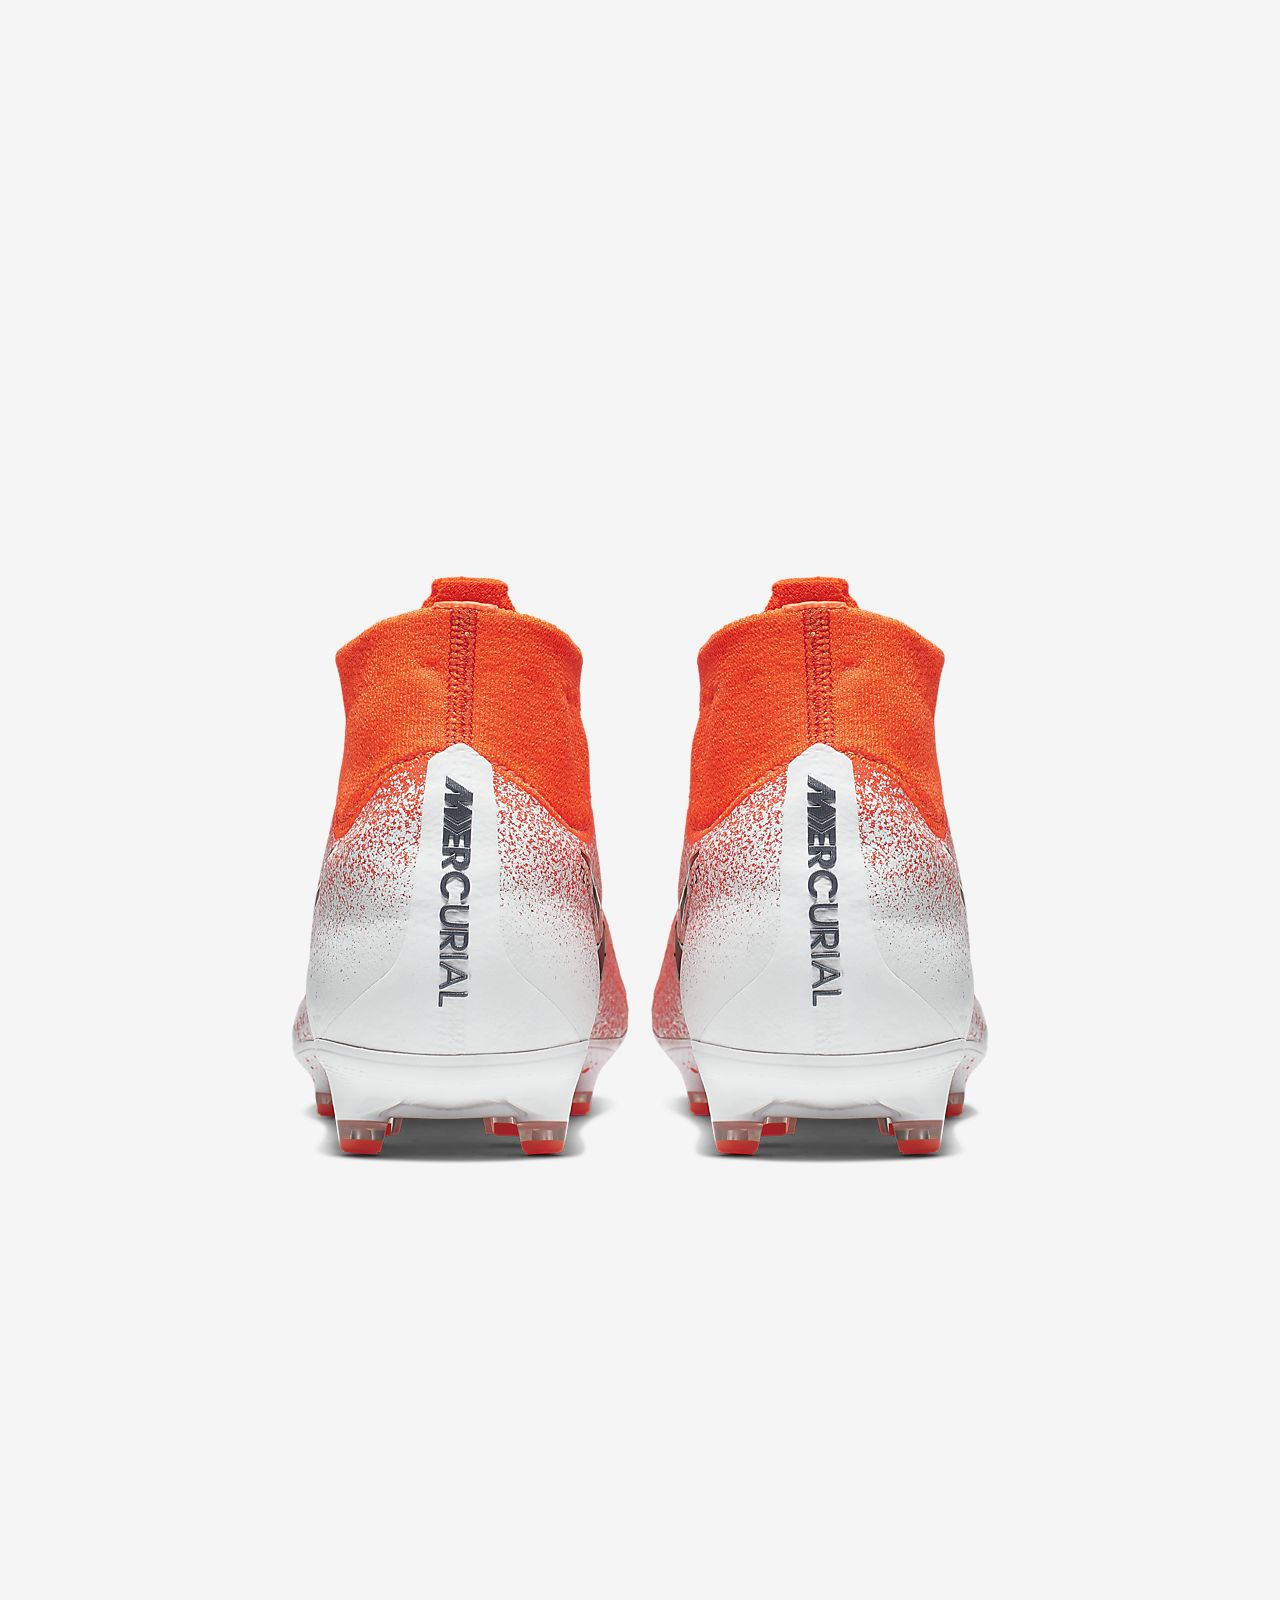 separation shoes 34215 c4a93 ... Nike Mercurial Superfly 360 Elite AG-PRO Artificial-Grass Football Boot